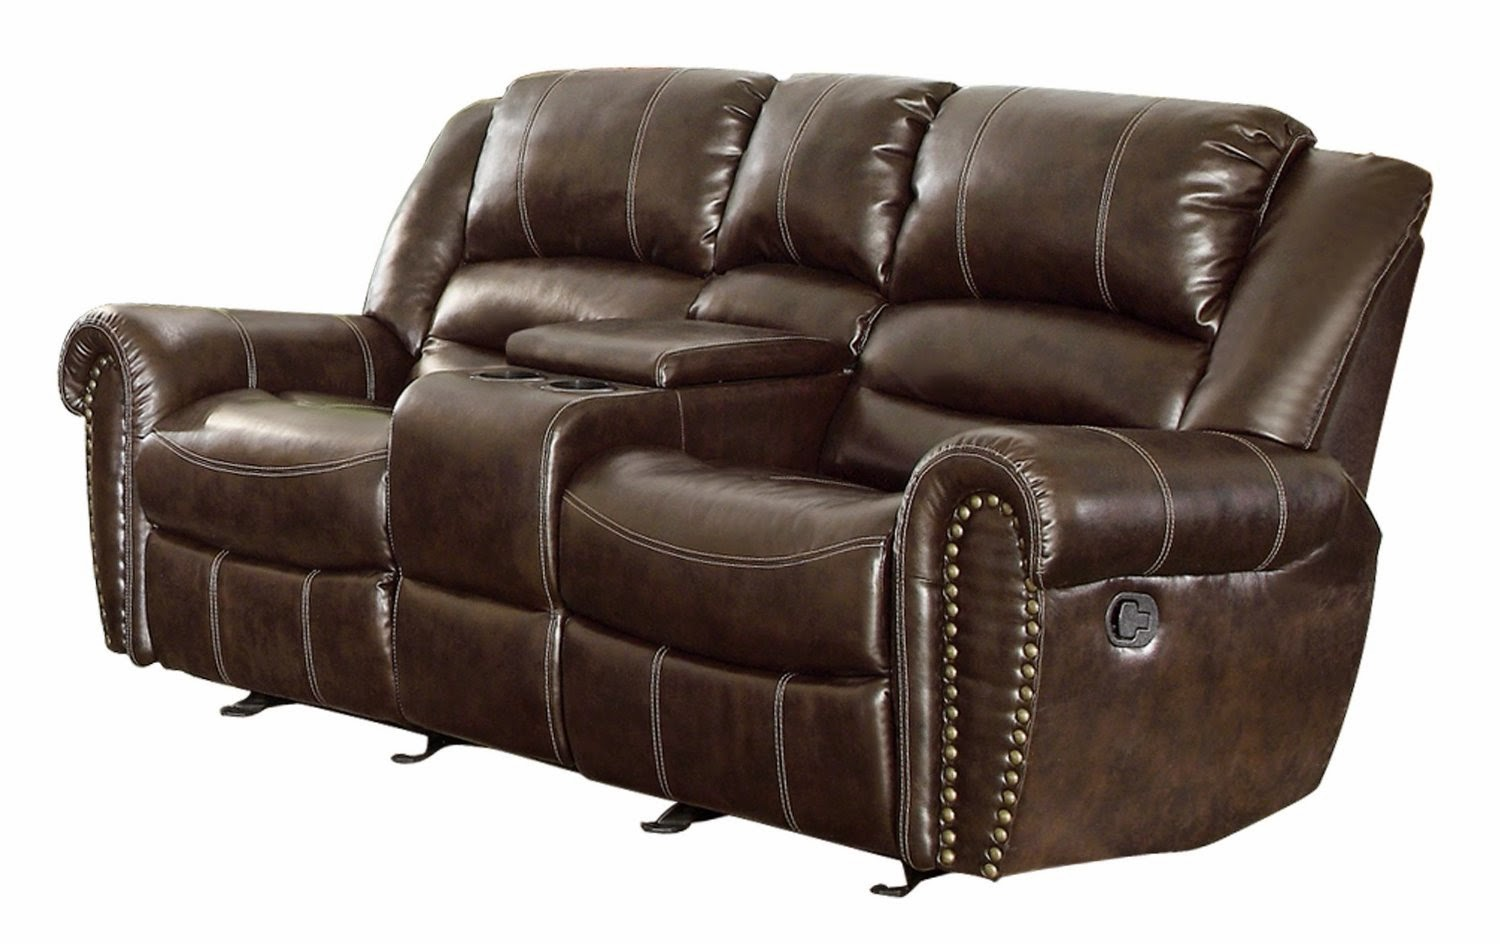 Reclining Sofa Loveseat And Chair Sets: Two Seat Reclining